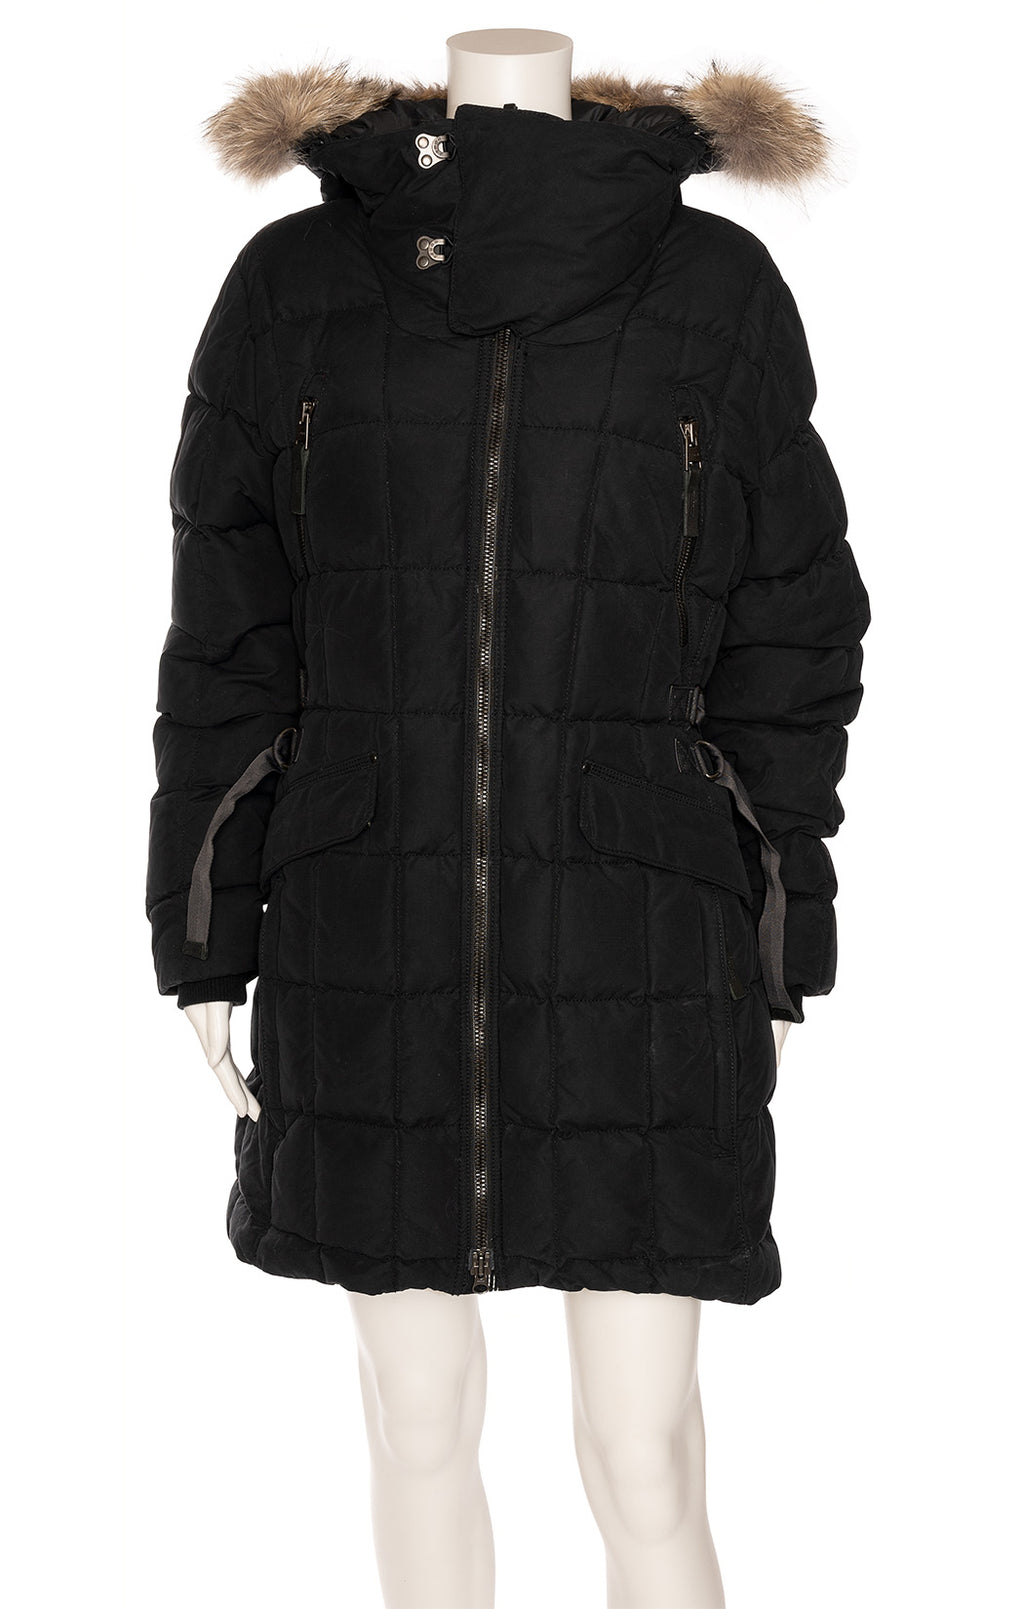 SOREL (with tags) Coat Size: Large